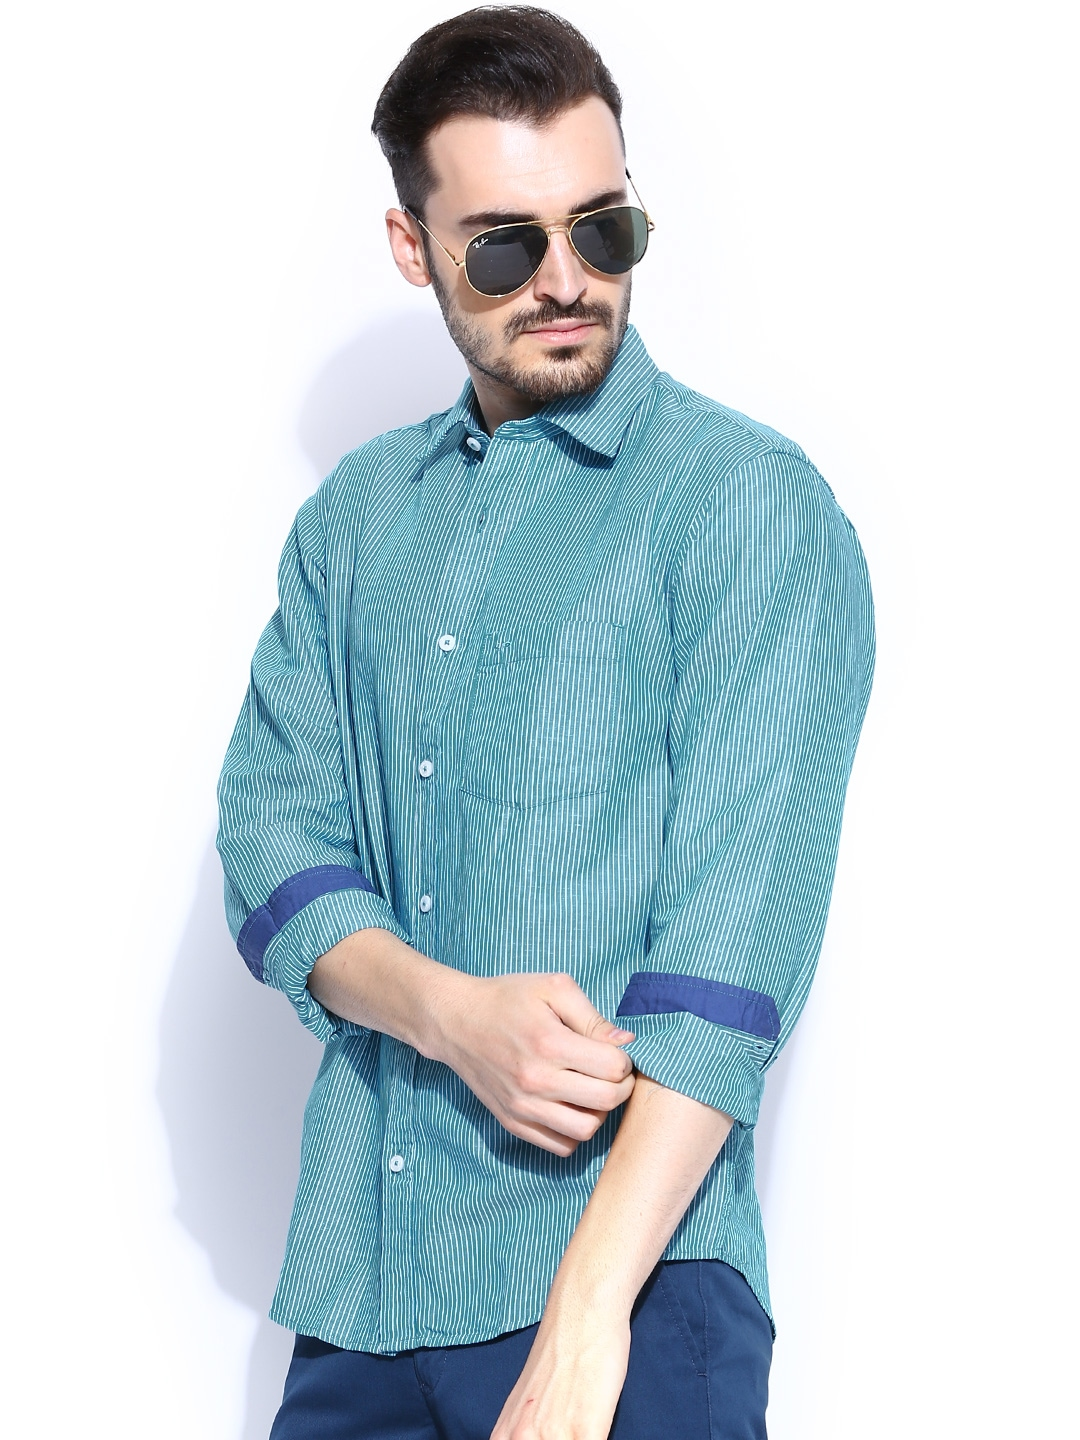 Myntra Colorplus Teal Green Off White Striped Tailored